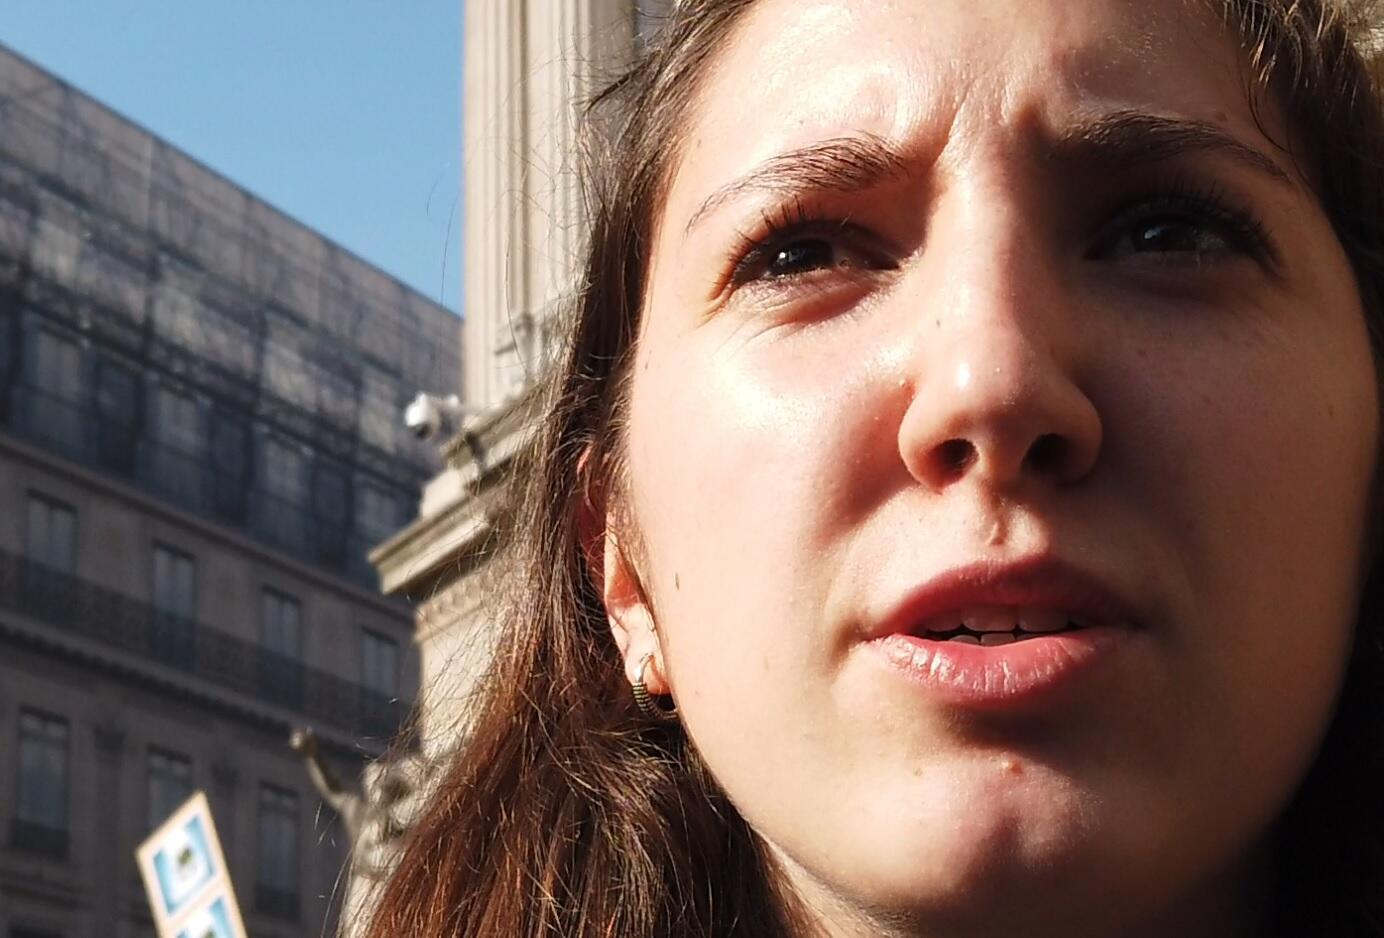 Annaelle, French student and climate activist